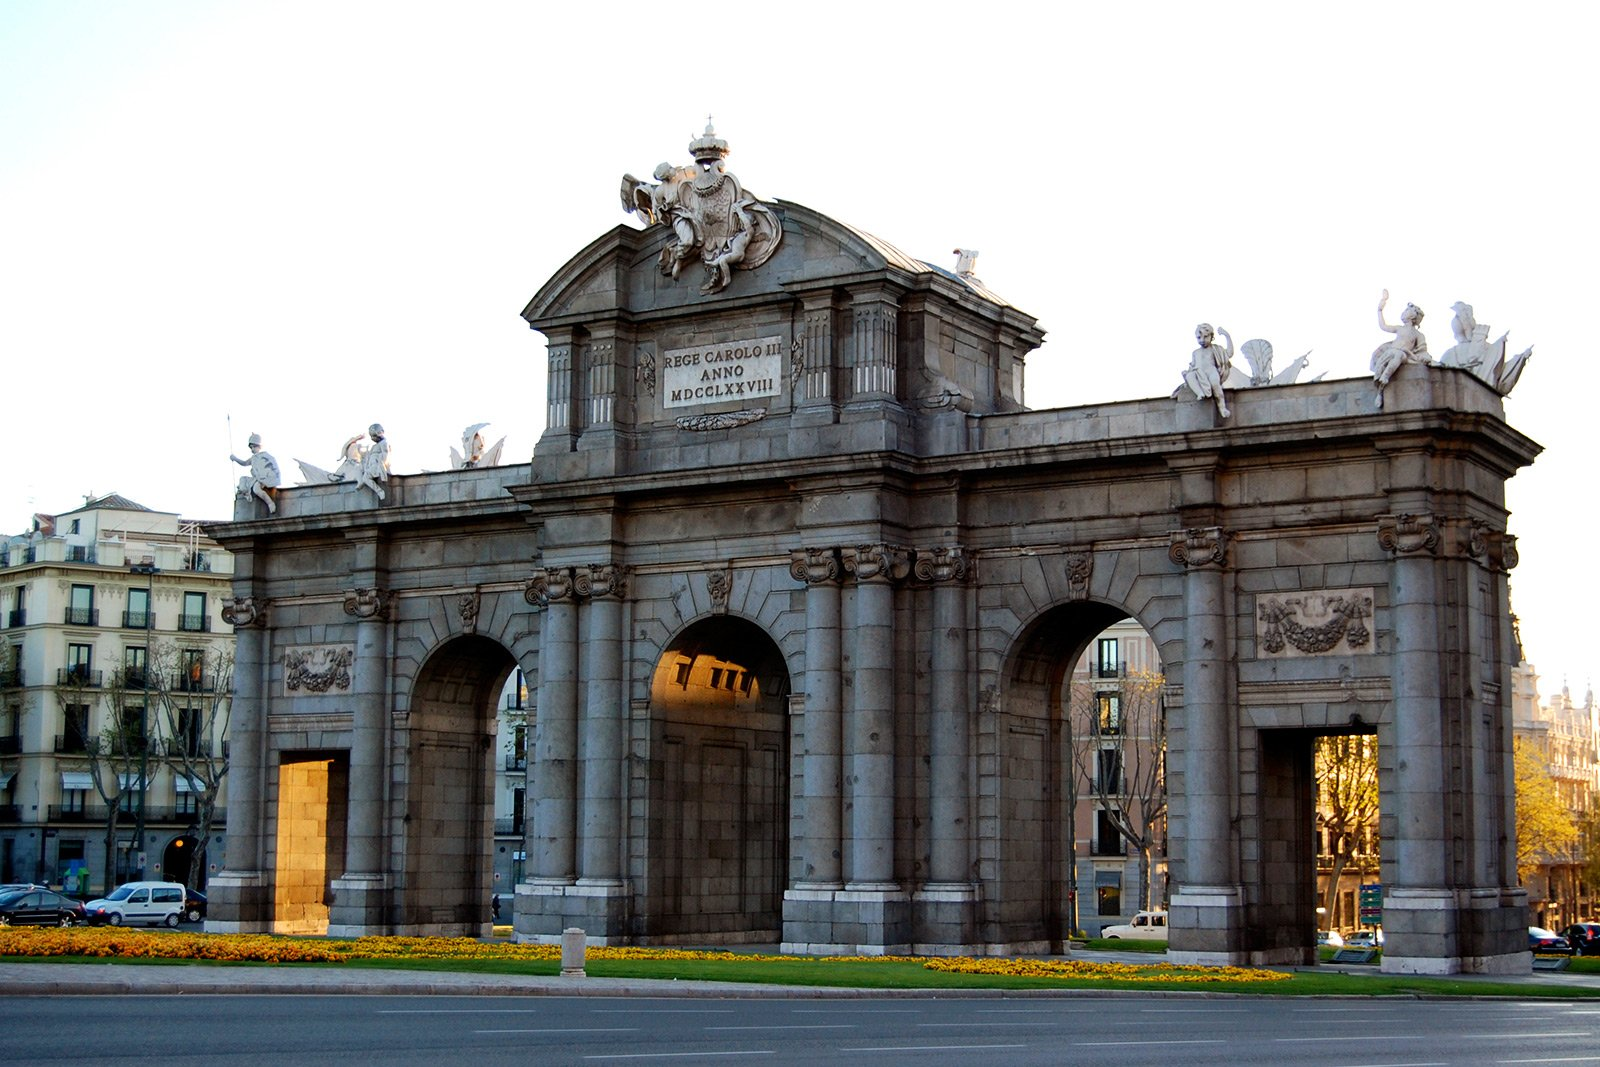 Alcalá Gate, Madrid